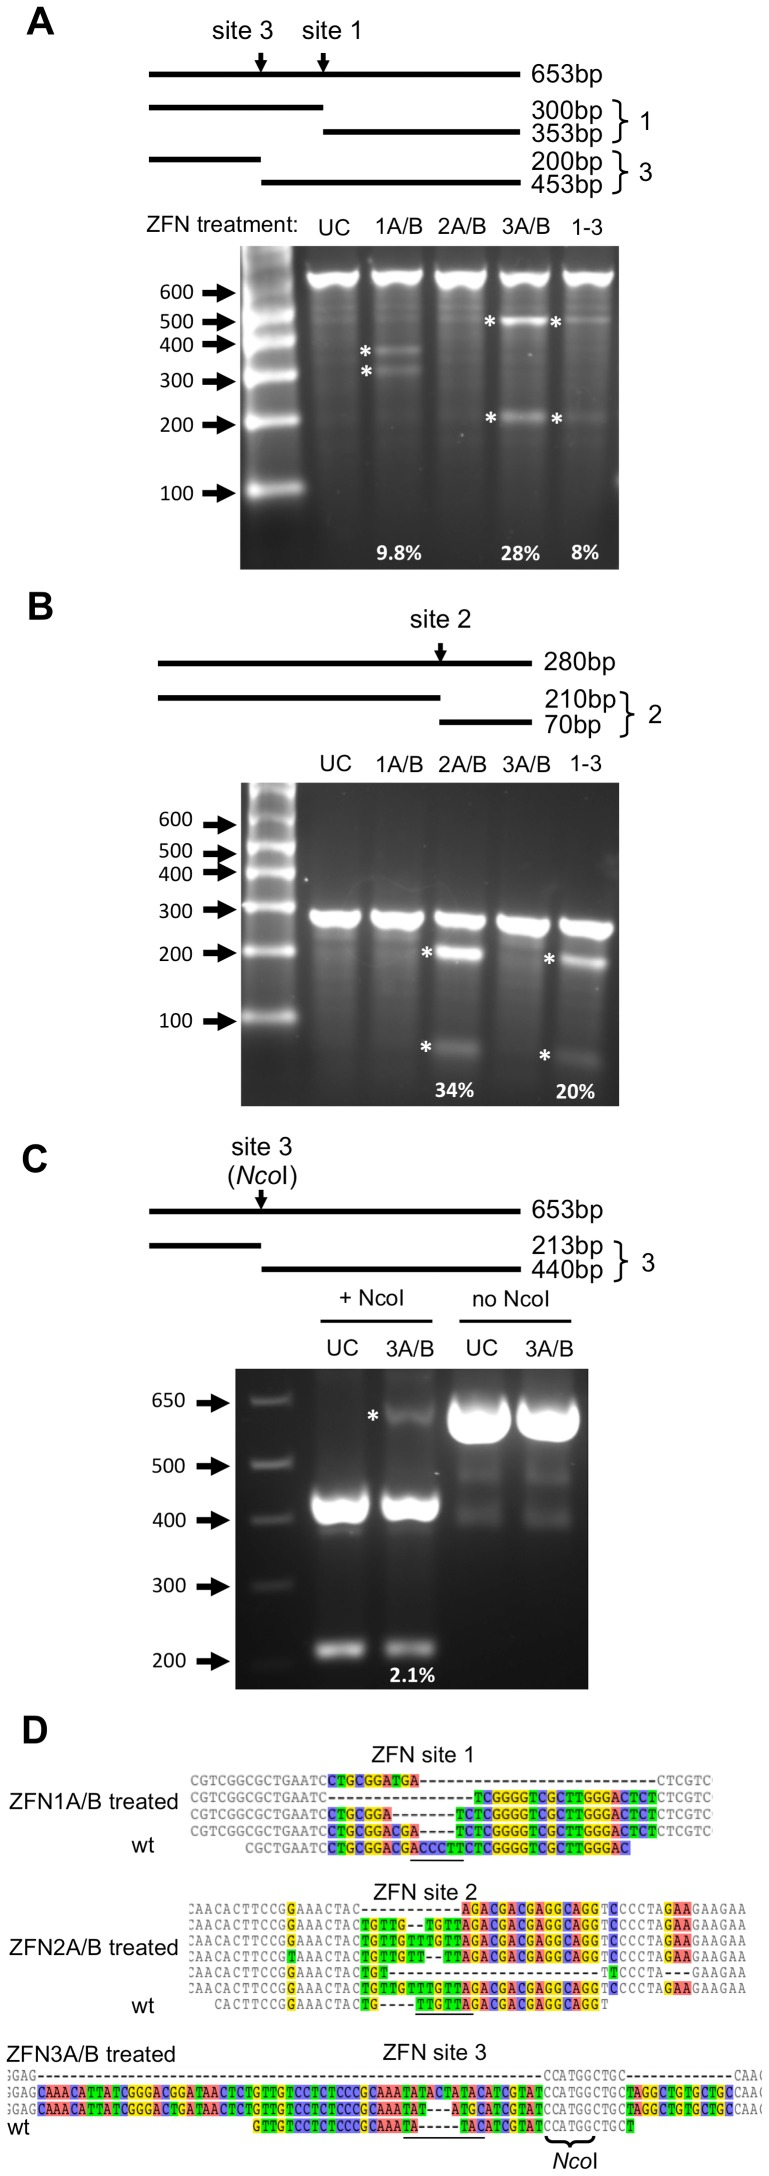 ZFN-induced target site disruption in HepAD38 cells. ( a, b ) Cells were transduced with scAAV2 vectors expressing ZFN pairs 1, 2, 3 or all three pairs together (1–3) at a total MOI of 10000 genomes/cell. The presence of mutations was analyzed in DNA isolated from transduced cells 72 hours later using the Surveyor nuclease assay. ( c ) For ZFN site 3, an analysis of DNA mutagenic events disrupting the internal NcoI cleavage site was also performed. Above the gel images, the sizes of PCR amplicons and the cleavage products produced upon Surveyor nuclease cleavage (indicating mutations at the indicated target site) or NcoI cleavage are shown. bp – base pairs; UC – untreated control; ZFN – zinc finger nuclease. Bands indicating mutations are highlighted with an asterisk and the percentage of ZFN-mediated DNA mutation for each targeted site is indicated. ( d ) DNA mutations that were detected at ZFN target sites 1, 2 and 3 within HepAD38 HBV sequences are shown above the wild-type ZFN site. Nucleotides with differences in at least one sequence are shown in color. Spacer regions are underlined. The rates at which DNA mutations were detected are listed in Table 1 . wt – wild type.